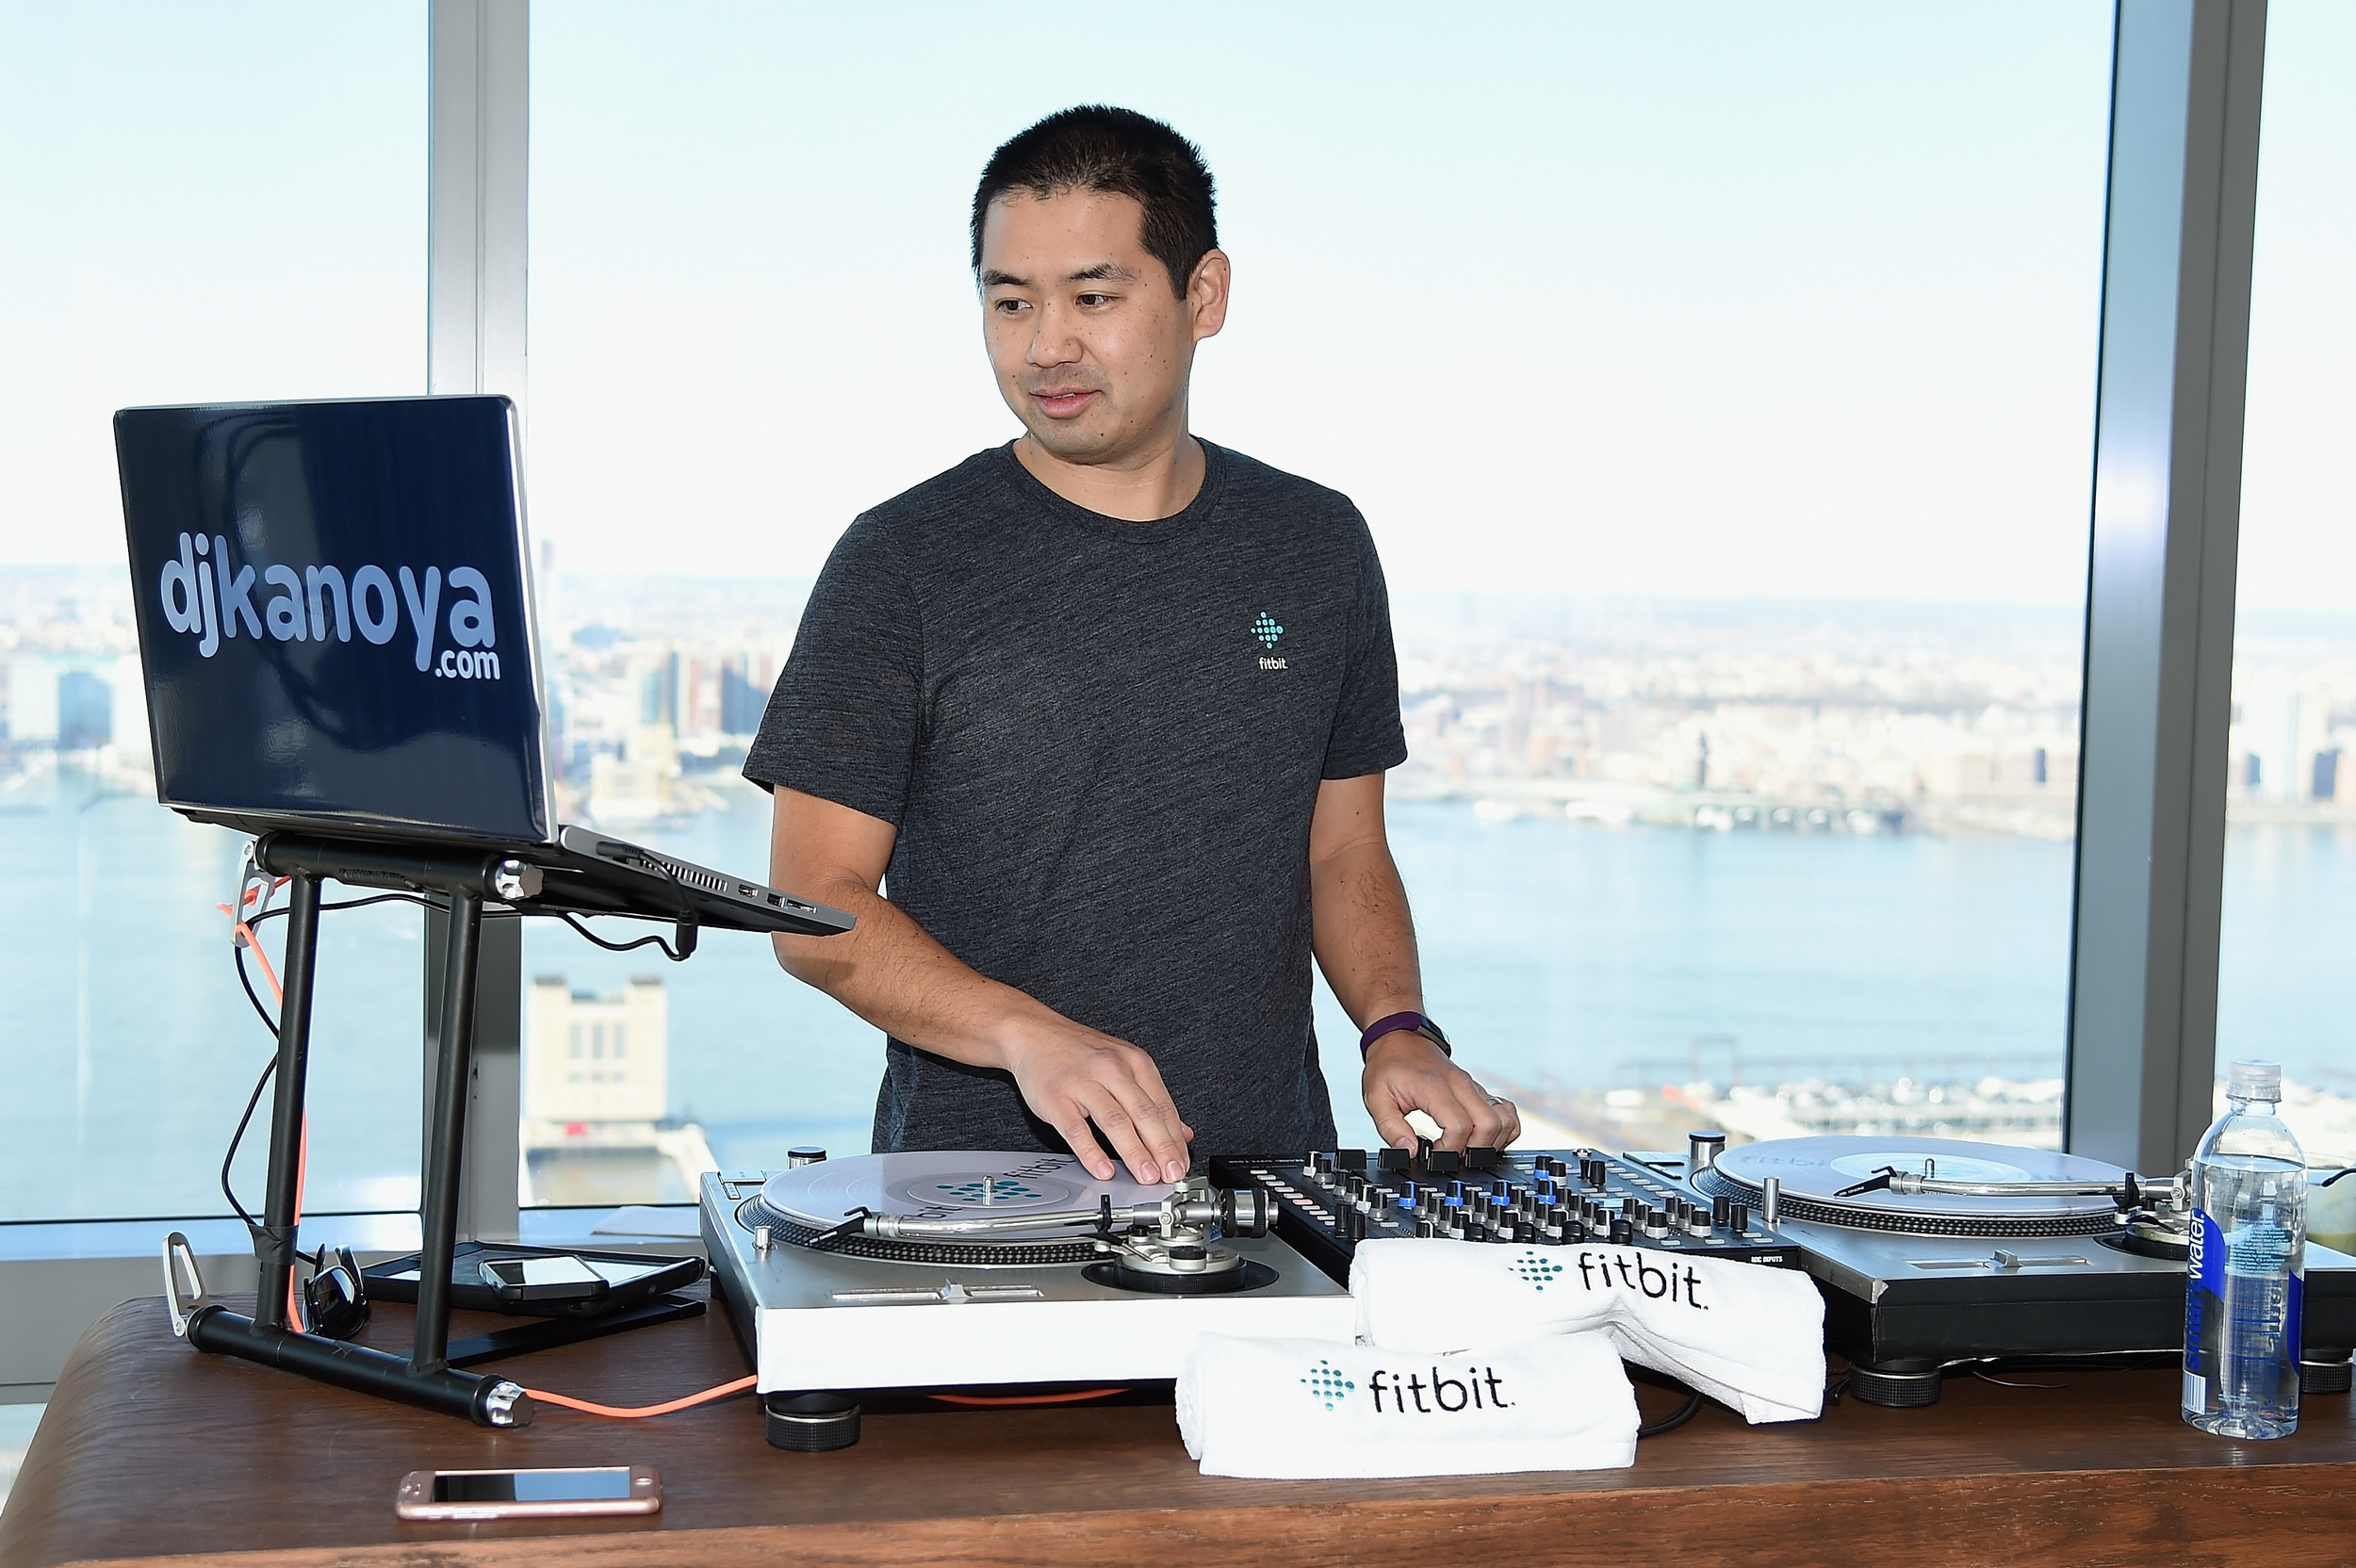 San Diego DJ, Justin Kanoya, plays a hip-hop music set for the Fitbit Alta product launch and workout led by Harley Pasternak.